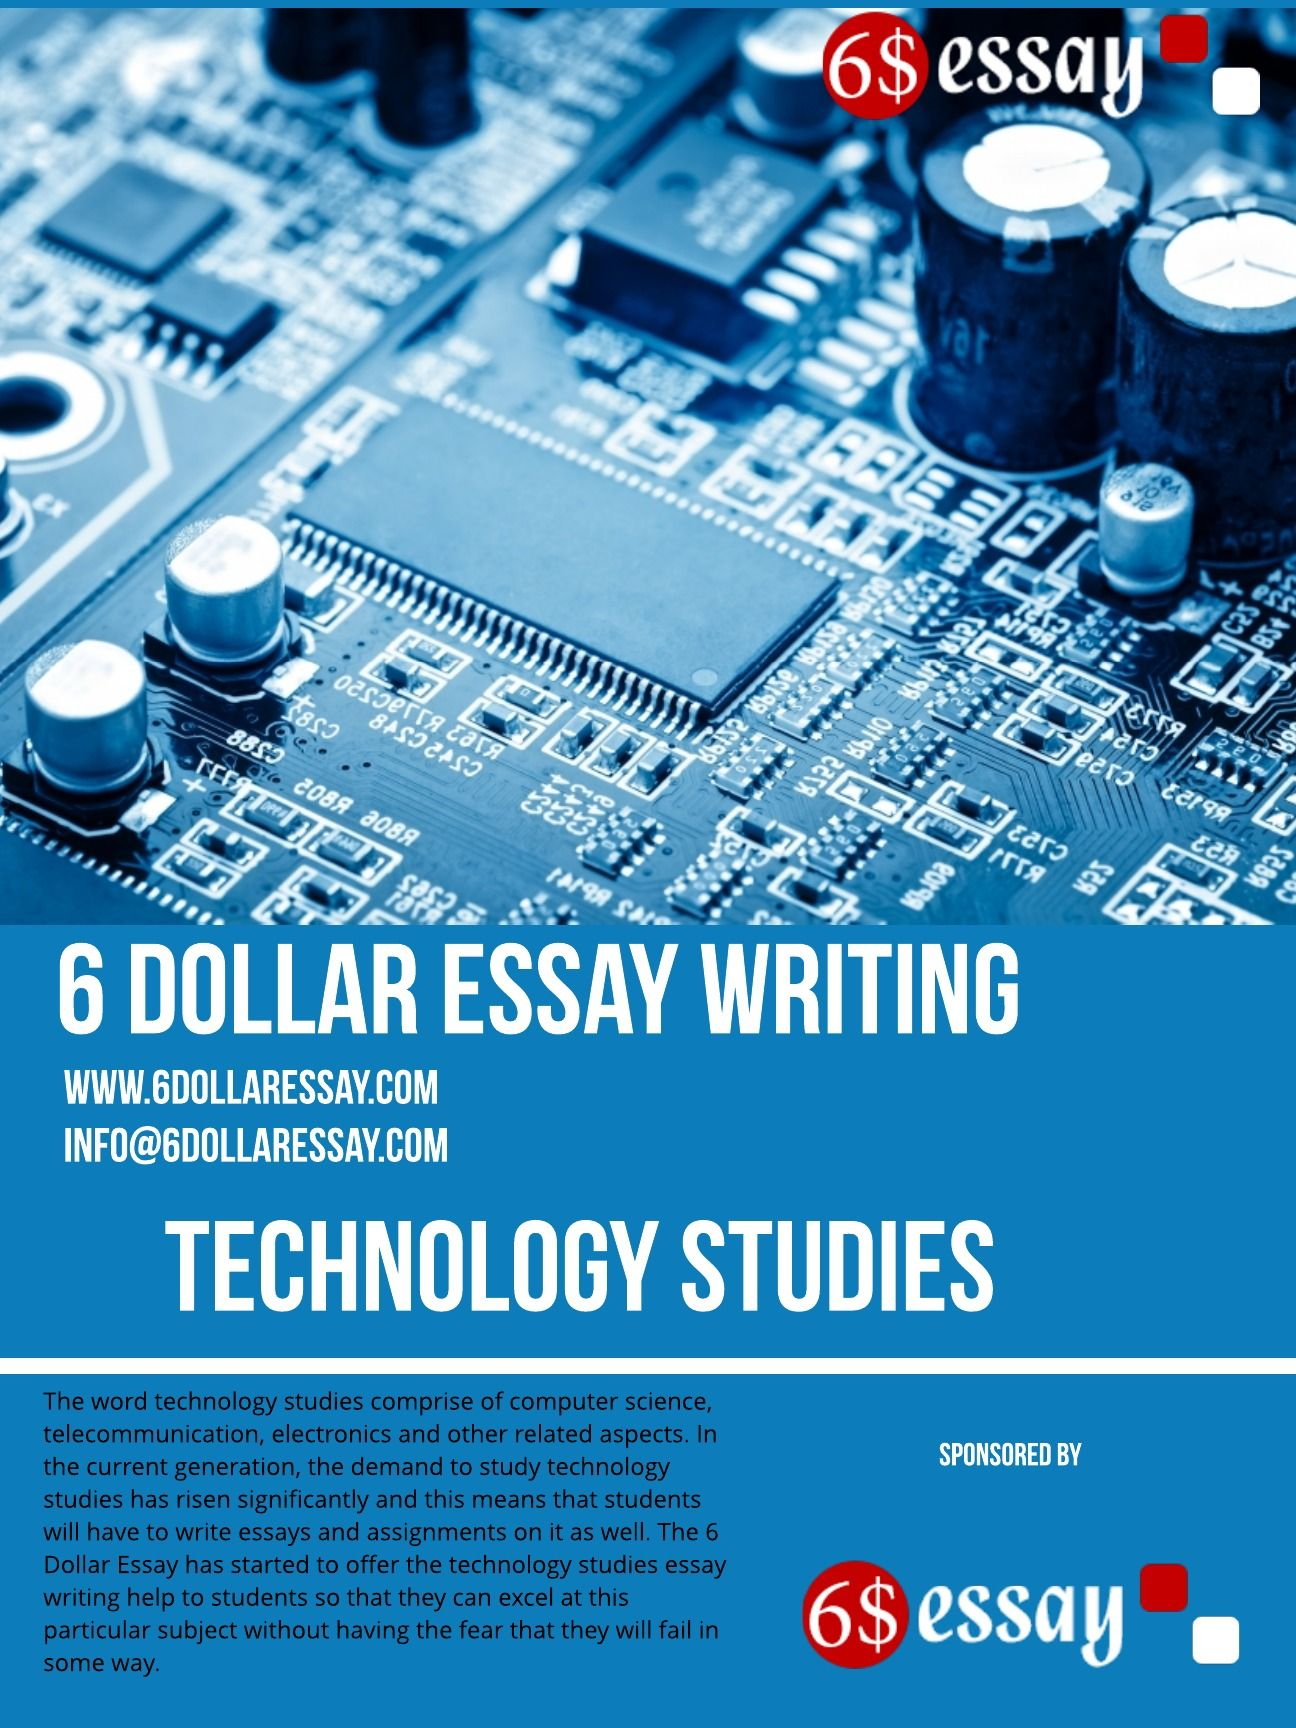 Custom term paper writing for hire for university